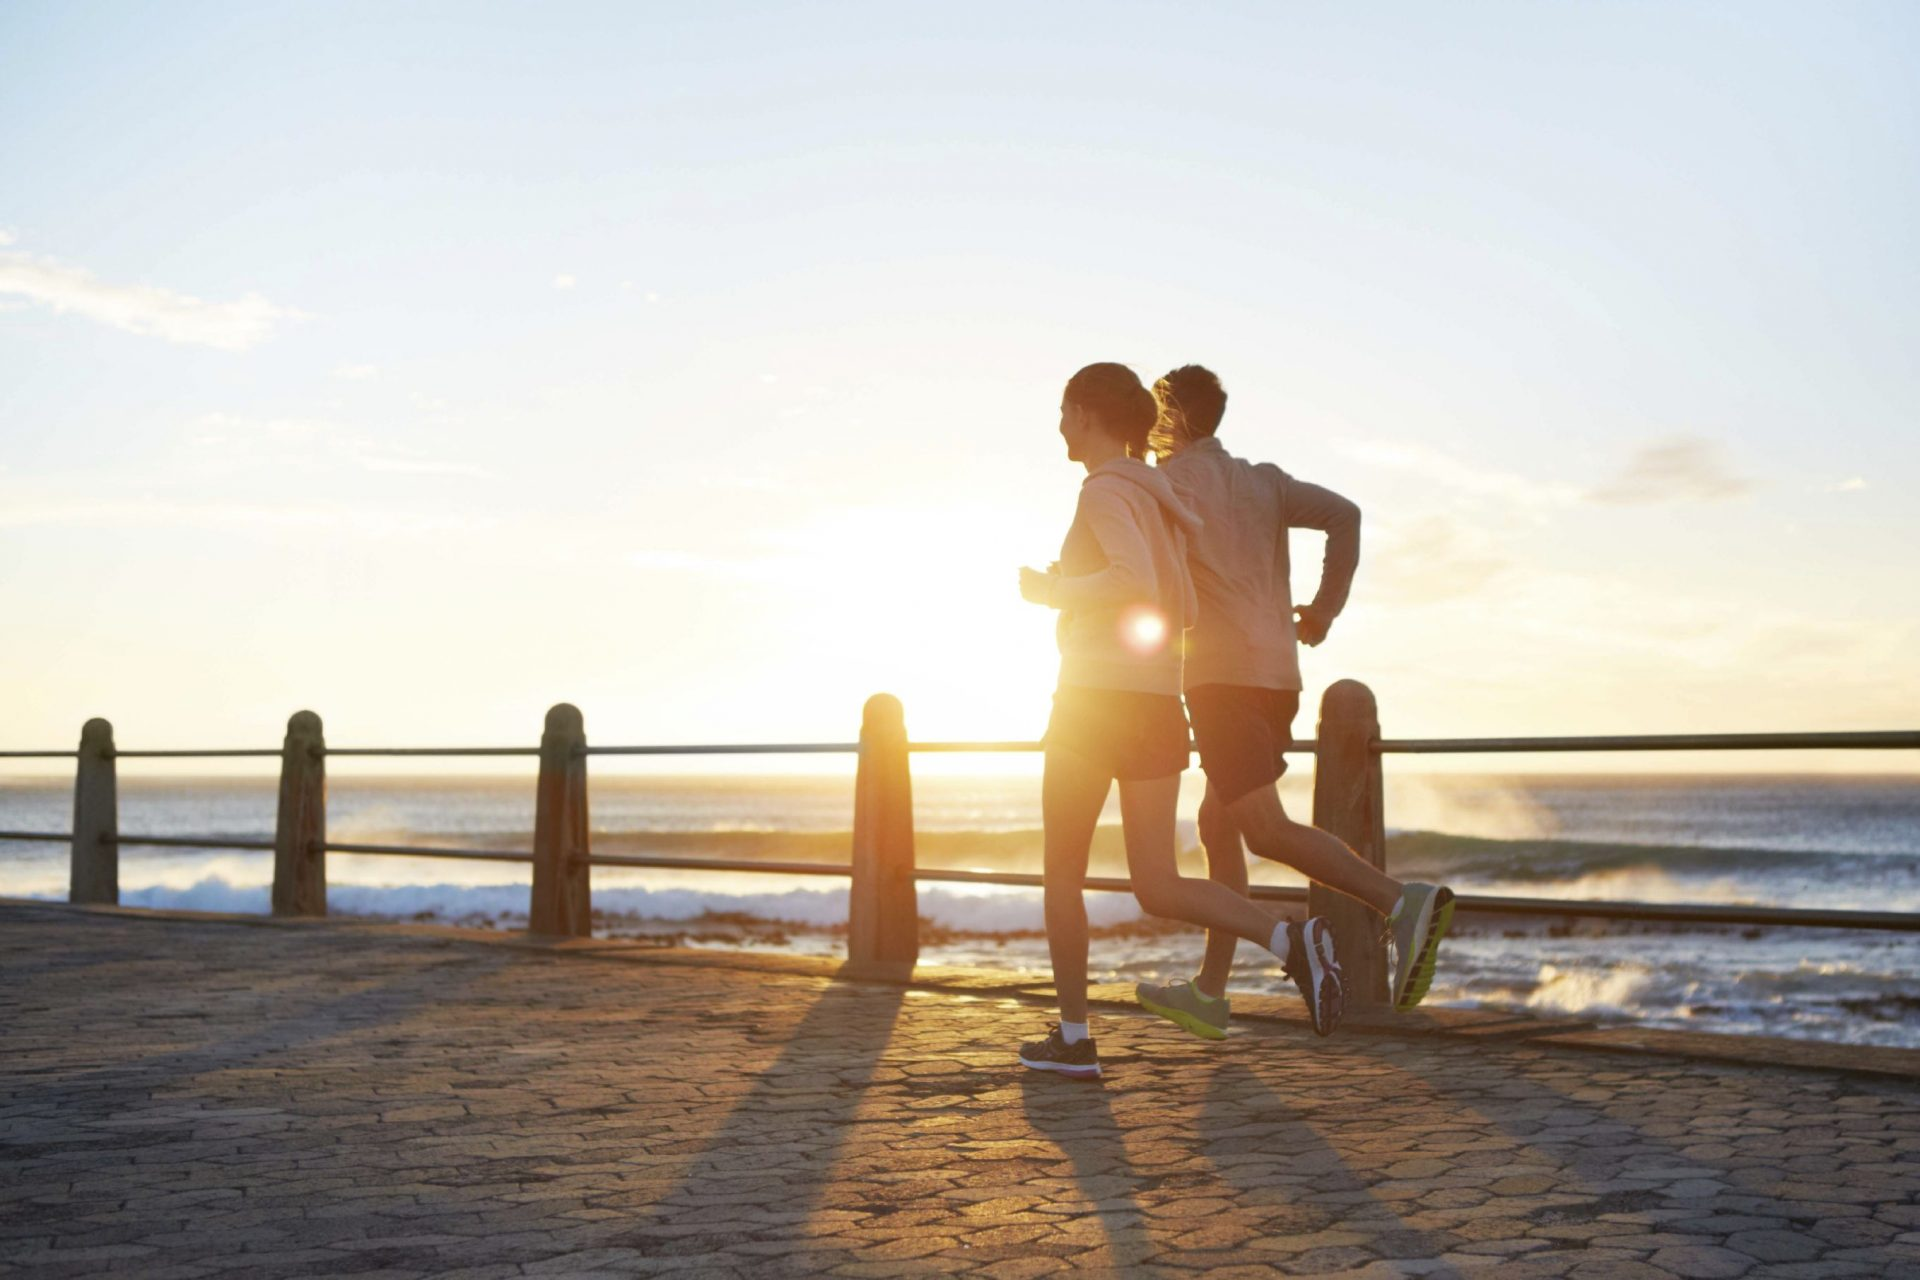 A young couple jogging on the promenade at sunset